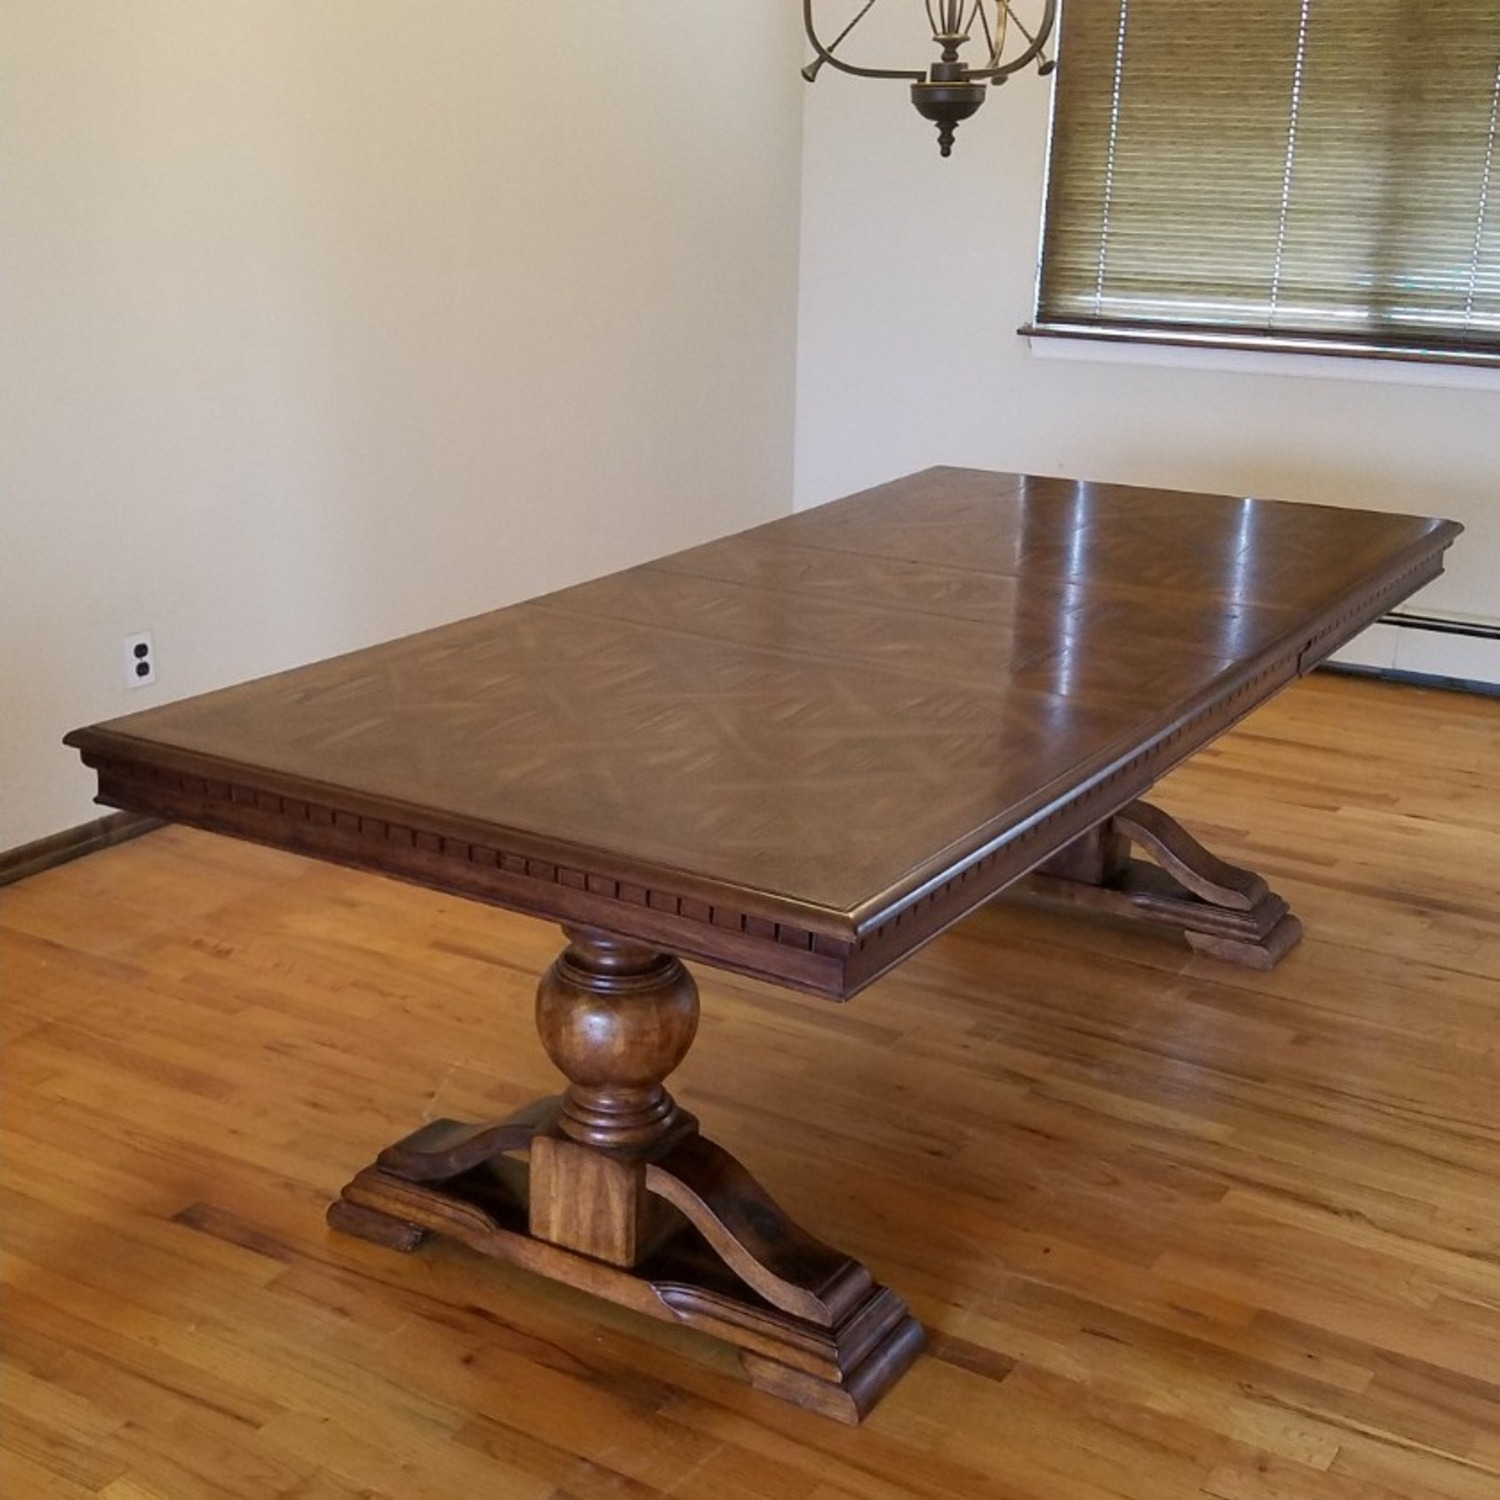 Double Pedestal Dining Table w/ 8 Cane Back Chairs - image-0